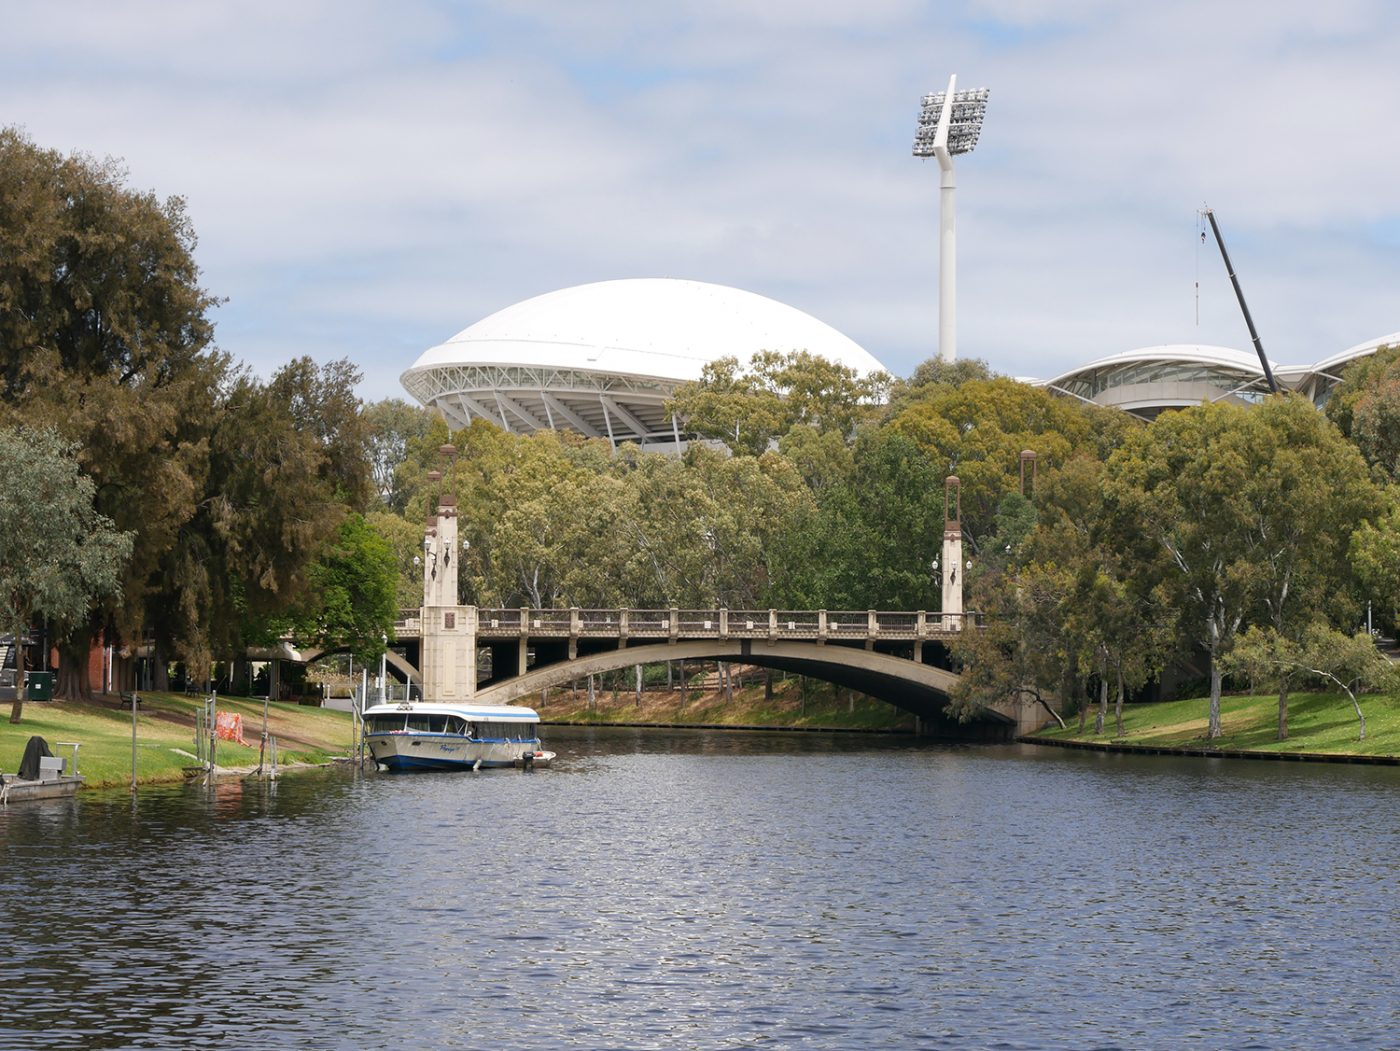 We leave the city behind us and walk to the Adelaide Oval